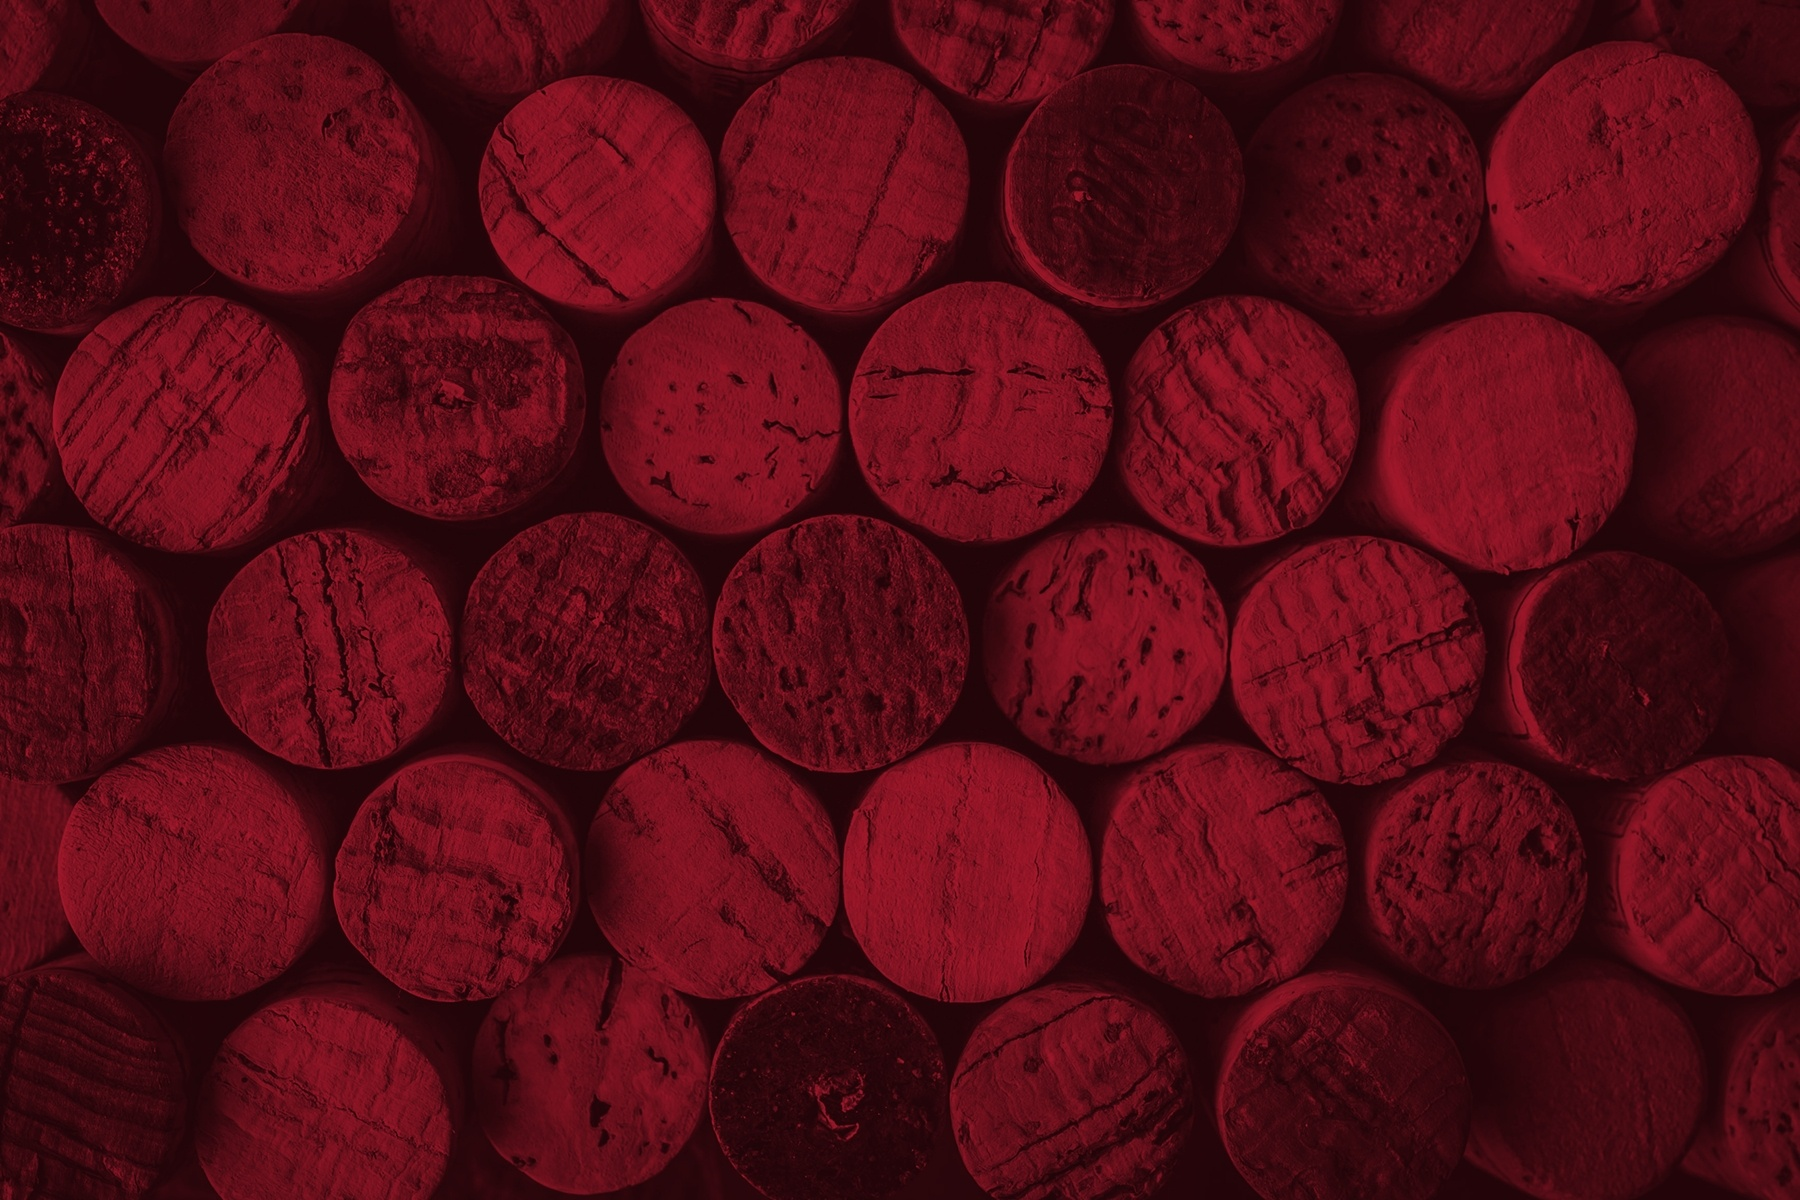 wine and spirit corks bunched together with red image overlay